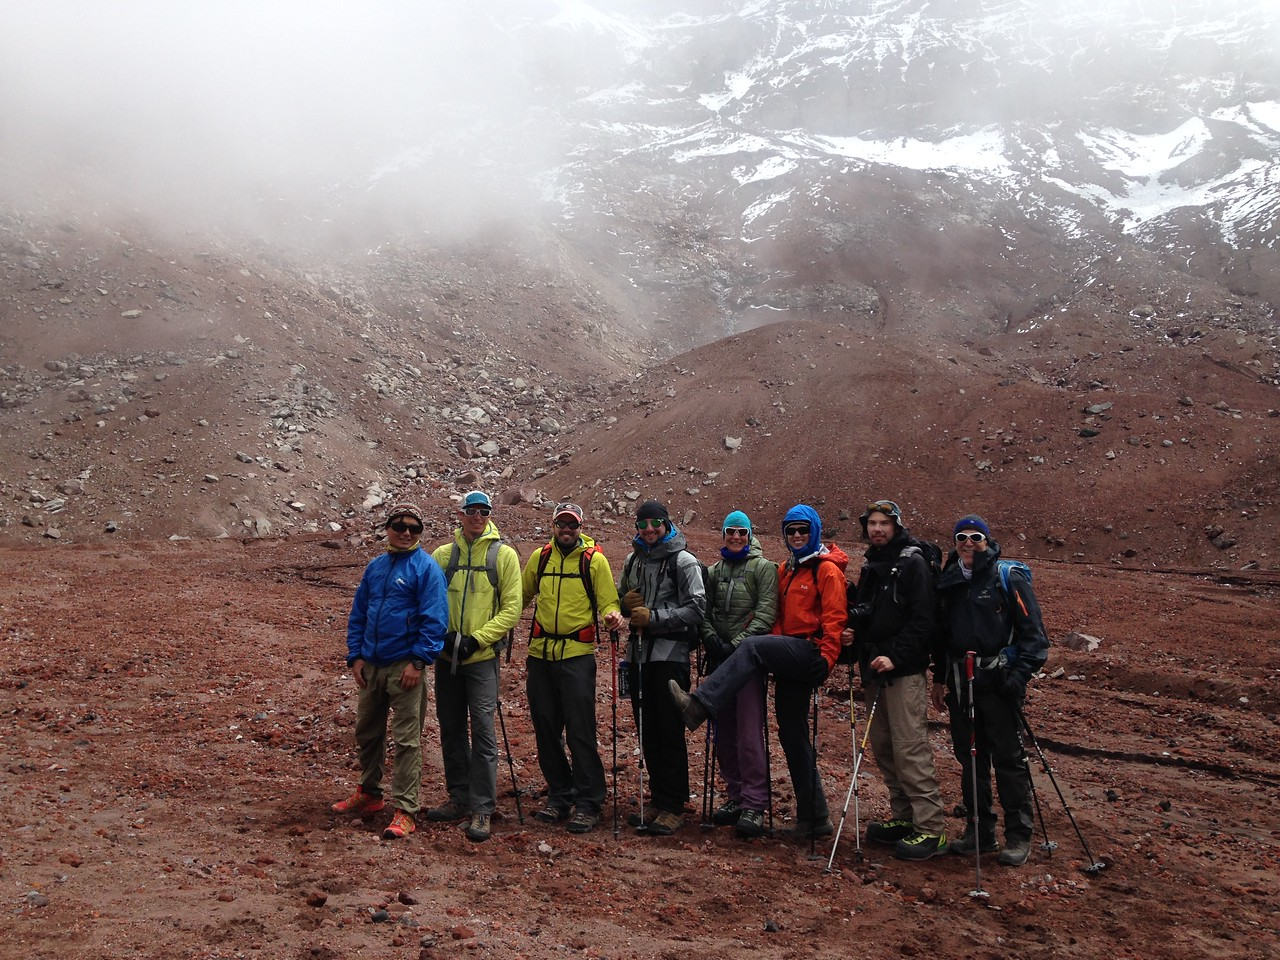 The team during an acclimatization hike on Chimborazo.